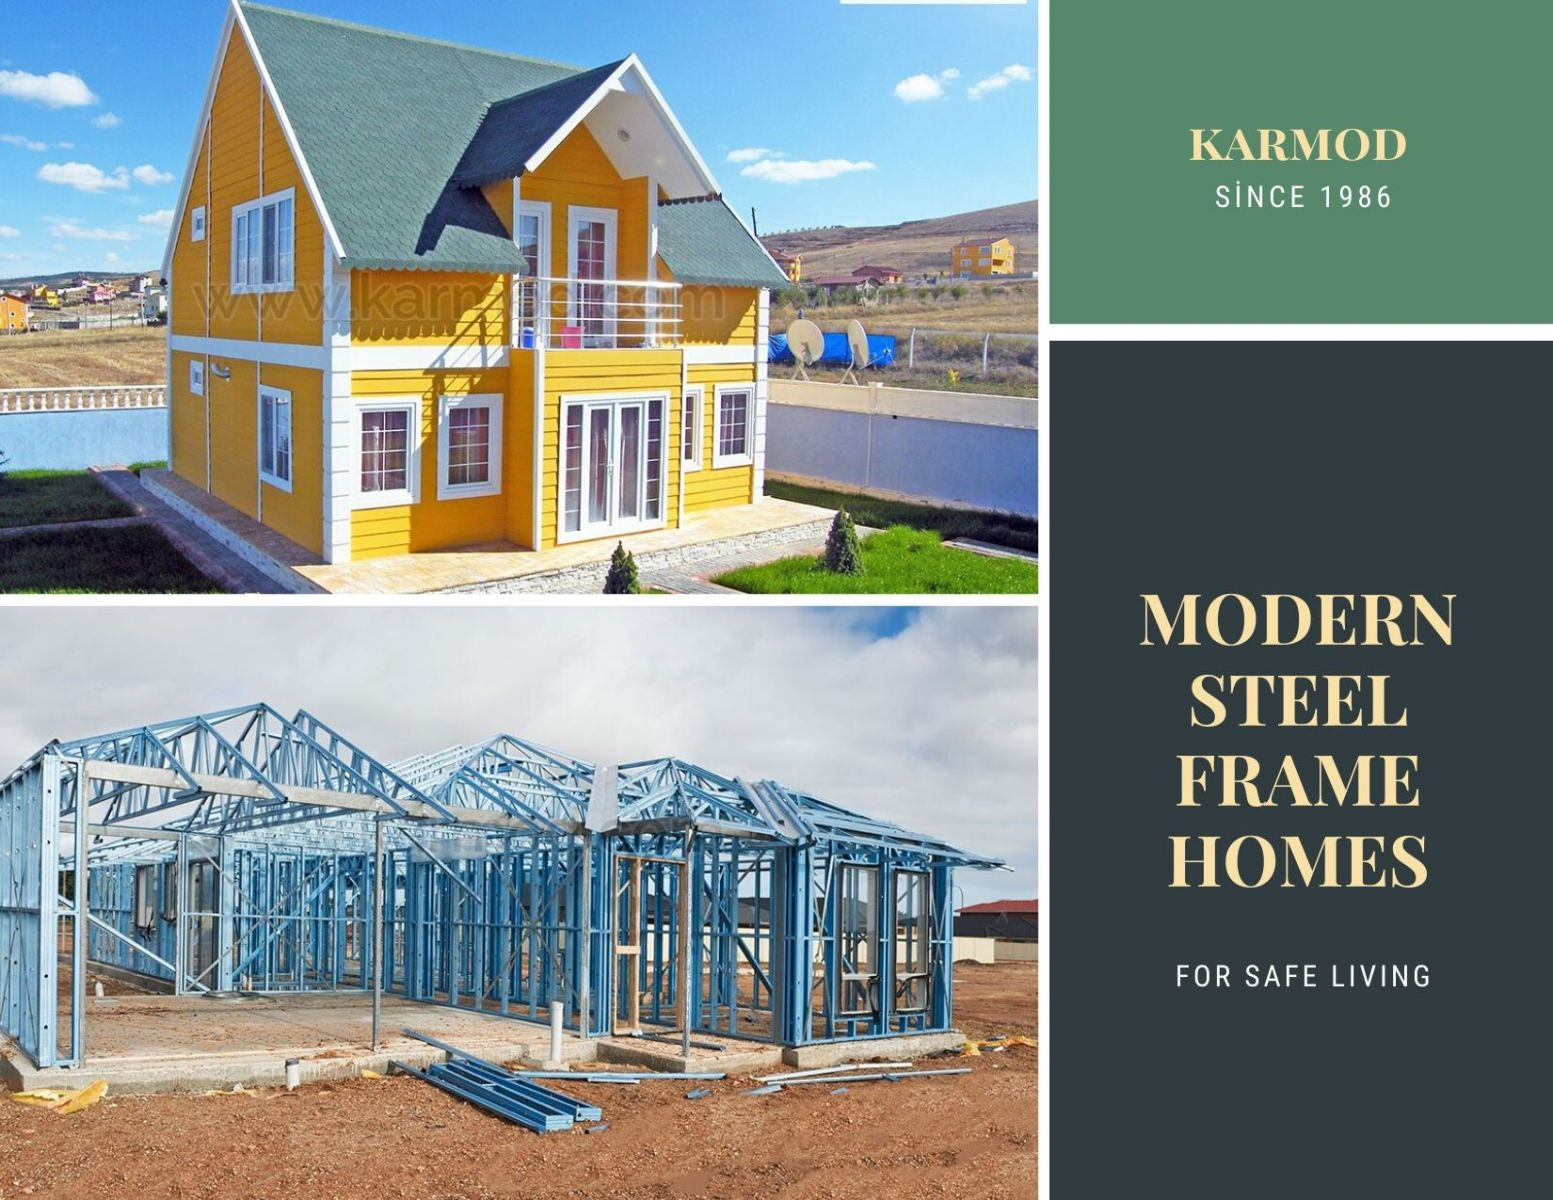 Modern Steel Frame Homes